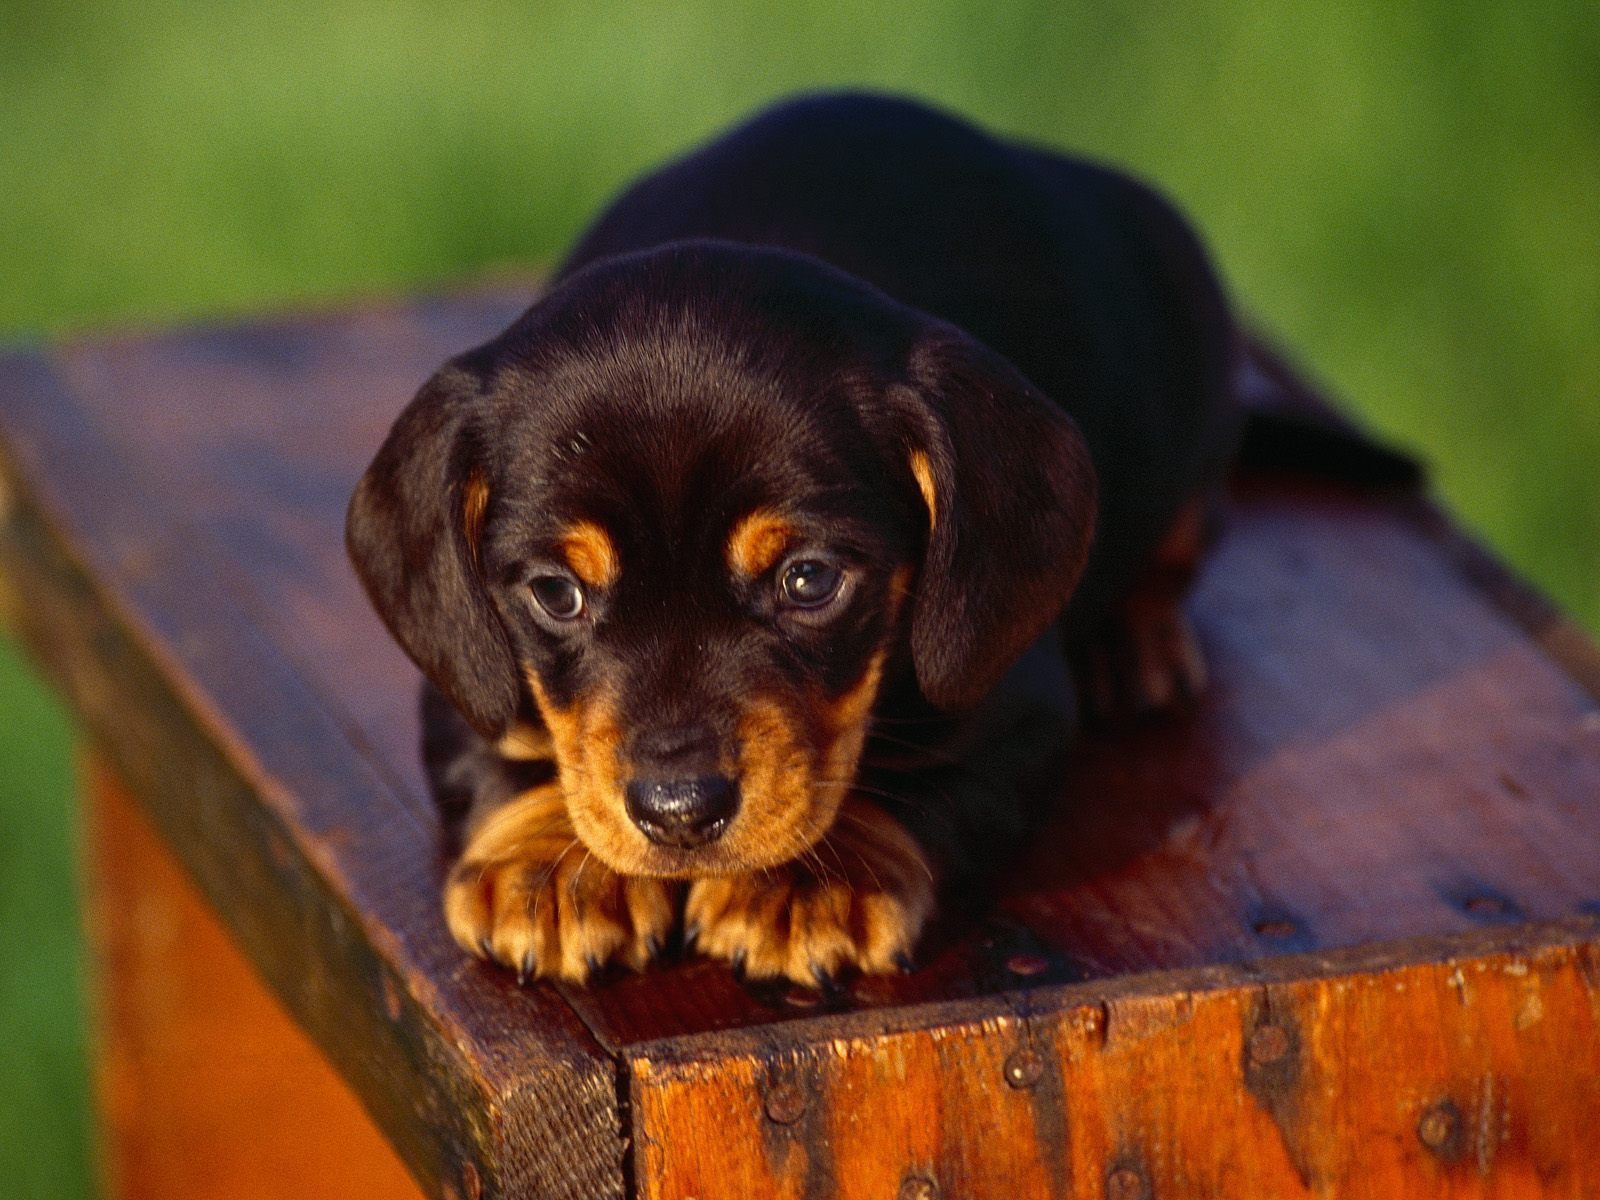 Winter Wallpaper Dachshund Dogs Free mini dachshund puppy wallpaper x Cute Wallpaper Blackberry